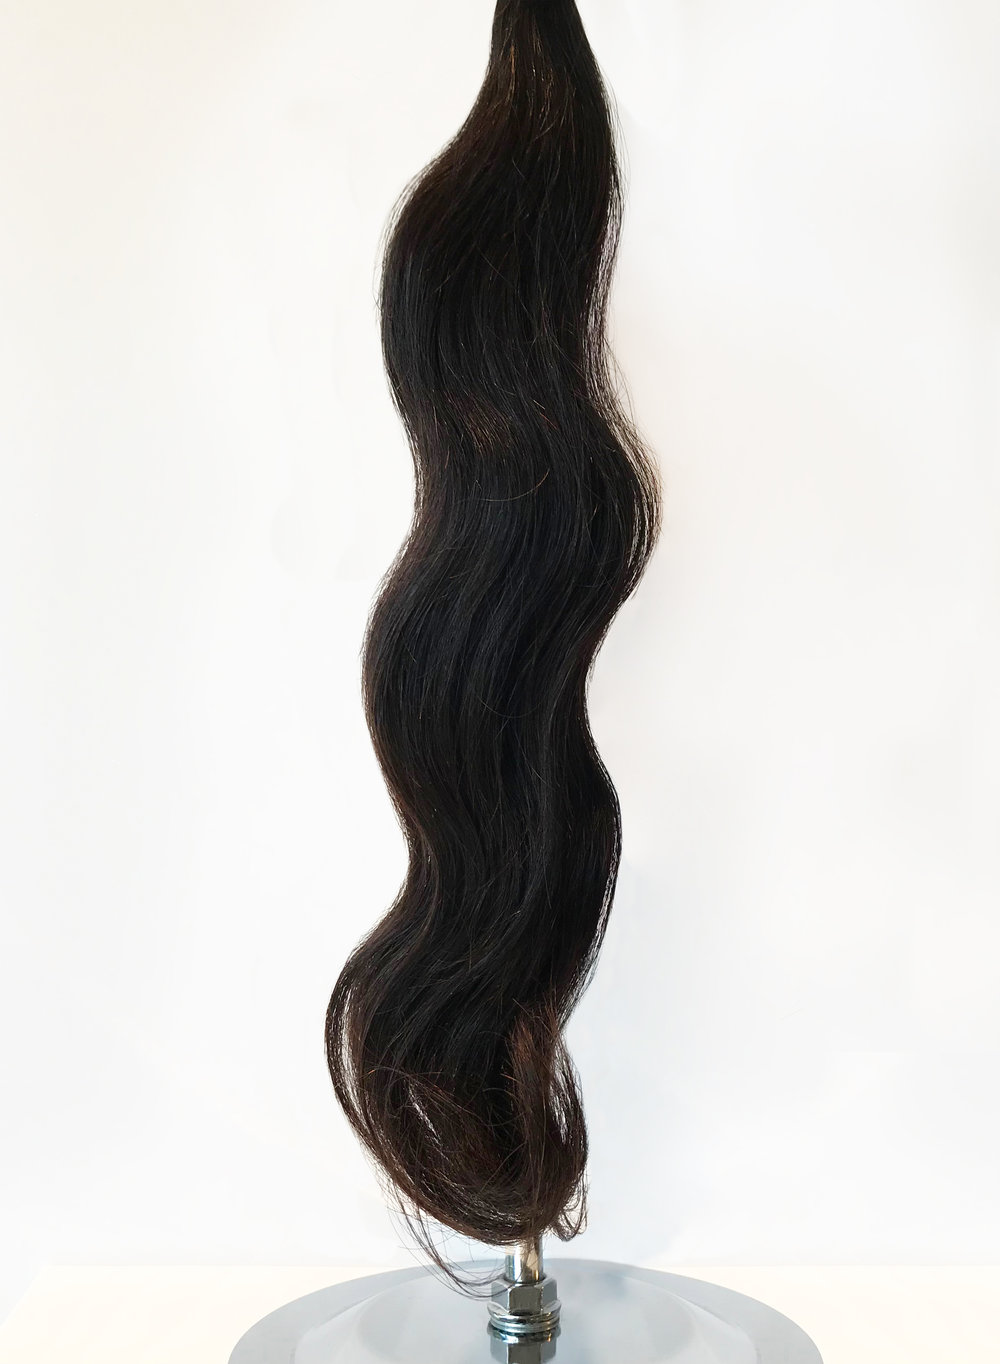 When hair goes through a steaming process, it comes out ready for you and ready for vacation! The defined s-pattern of our ocean wave hair provides amazing shine and the perfect texture for anyone wanting a little (or a lot of) wave in their life. Without the fuss of hot tools or tangling, our water wave has the fullness and body for all types of curls and waves.